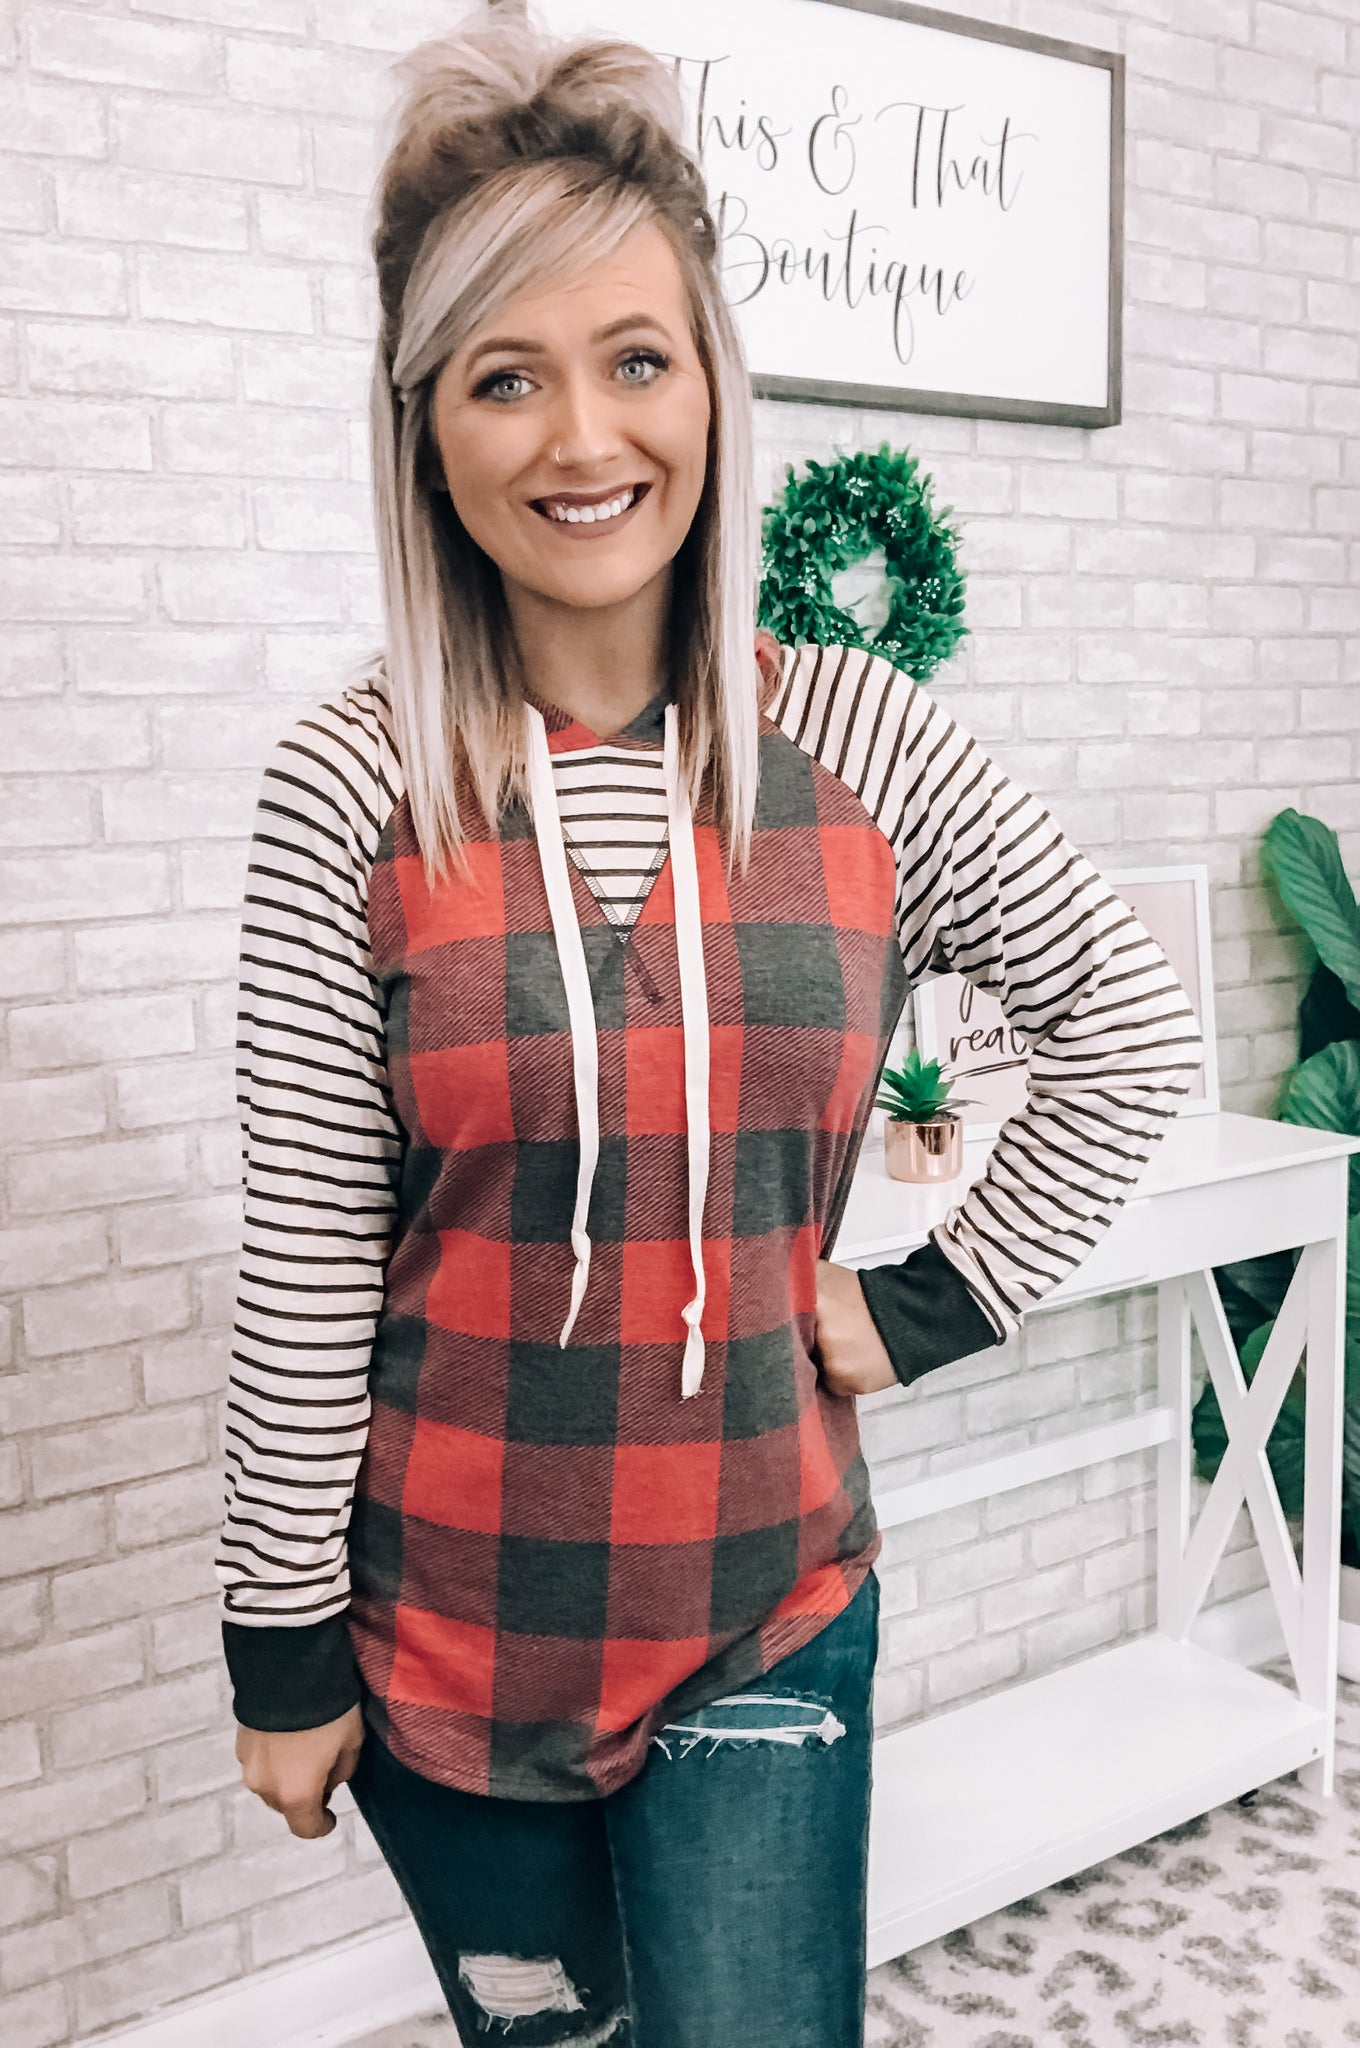 Plaid and Striped Hoodie - This & That Boutique Shop